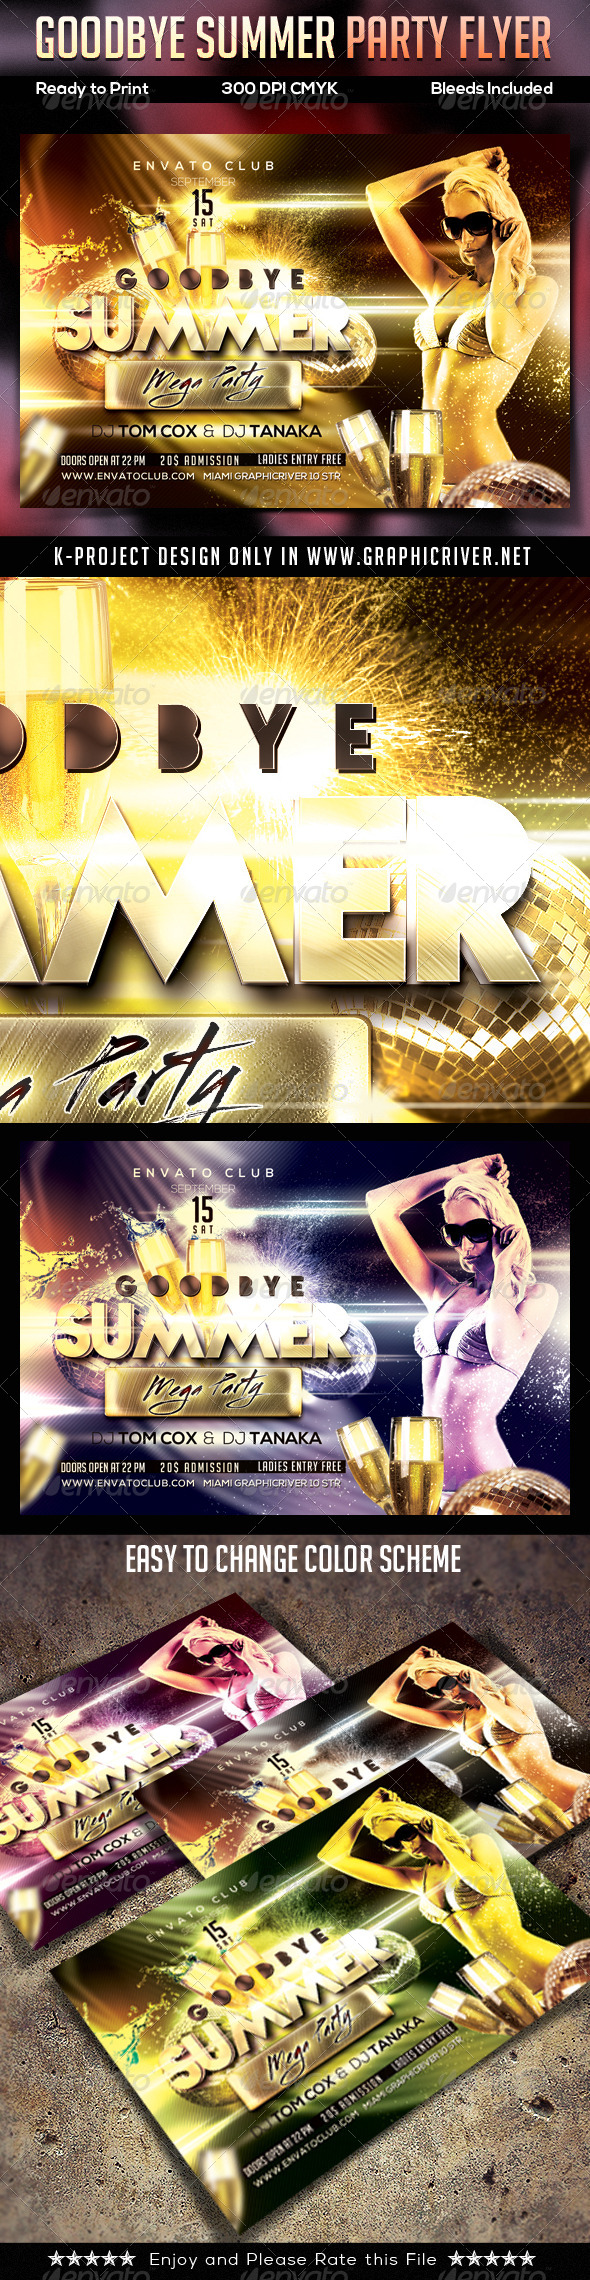 GraphicRiver Goodbye Summer Party Flyer 8753950